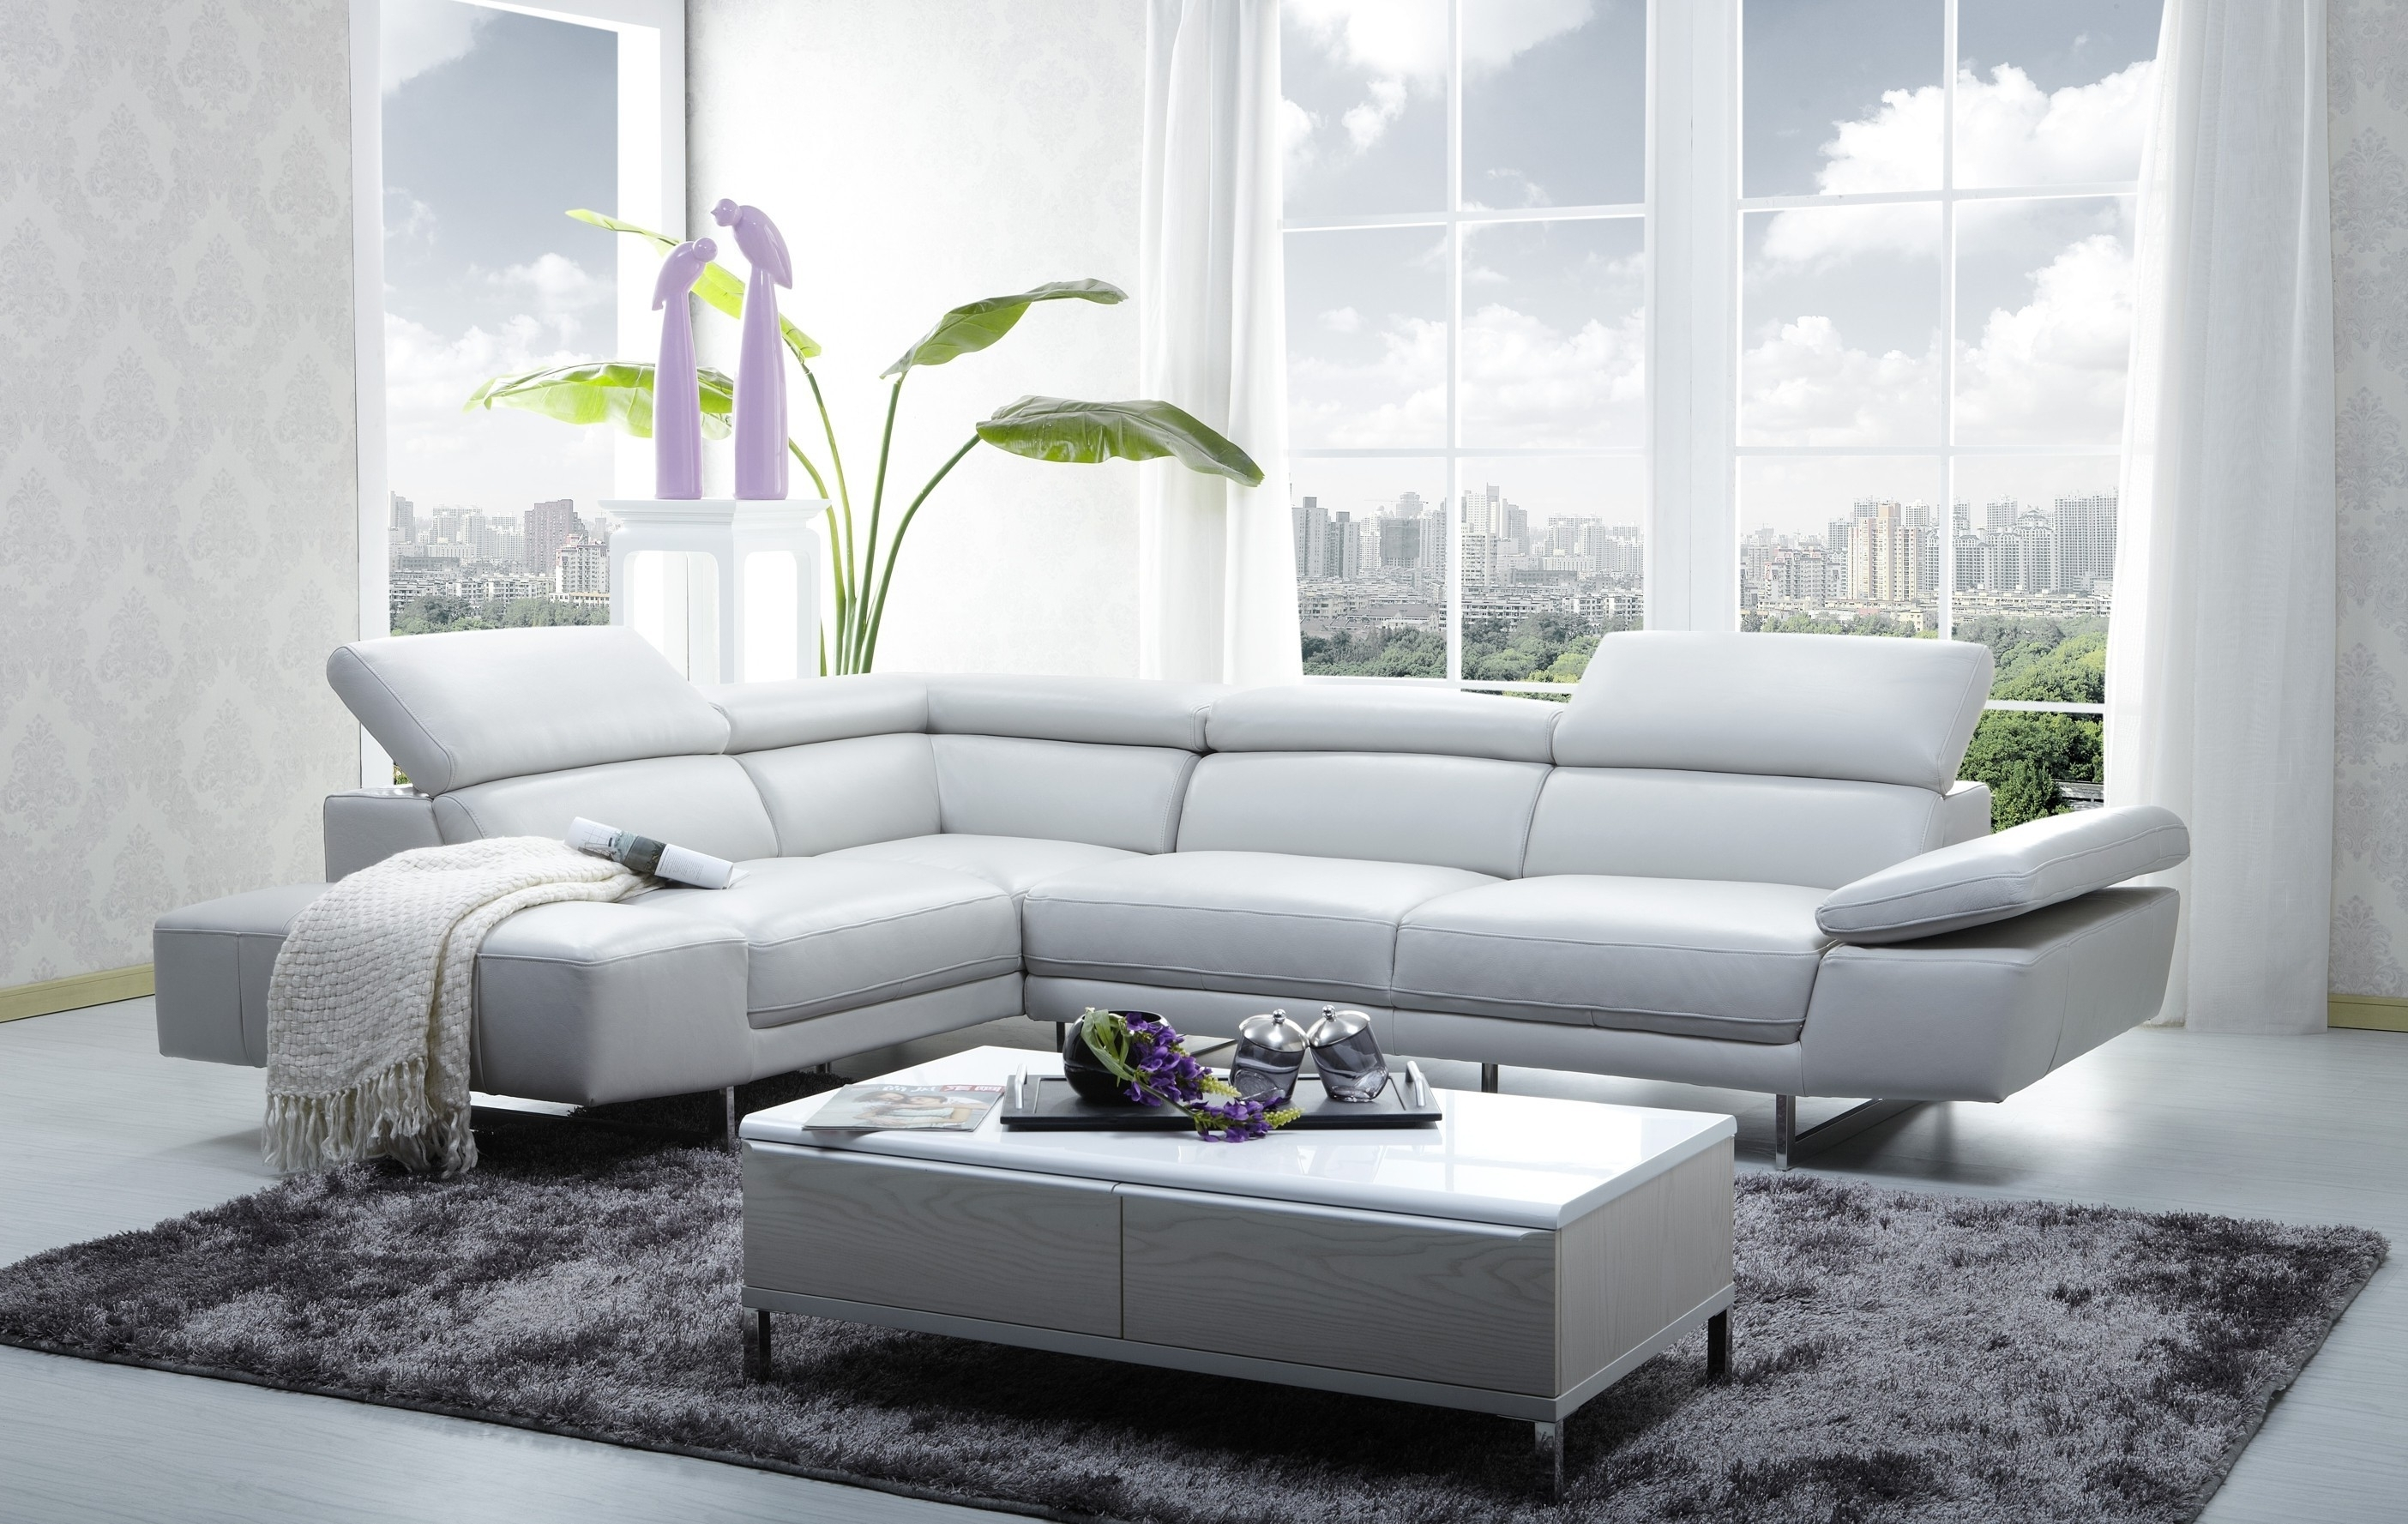 Fashionable Furniture : Chesterfield Sofa Joss And Main Tufted Ottoman Pier 1 With Gatineau Sectional Sofas (View 2 of 15)